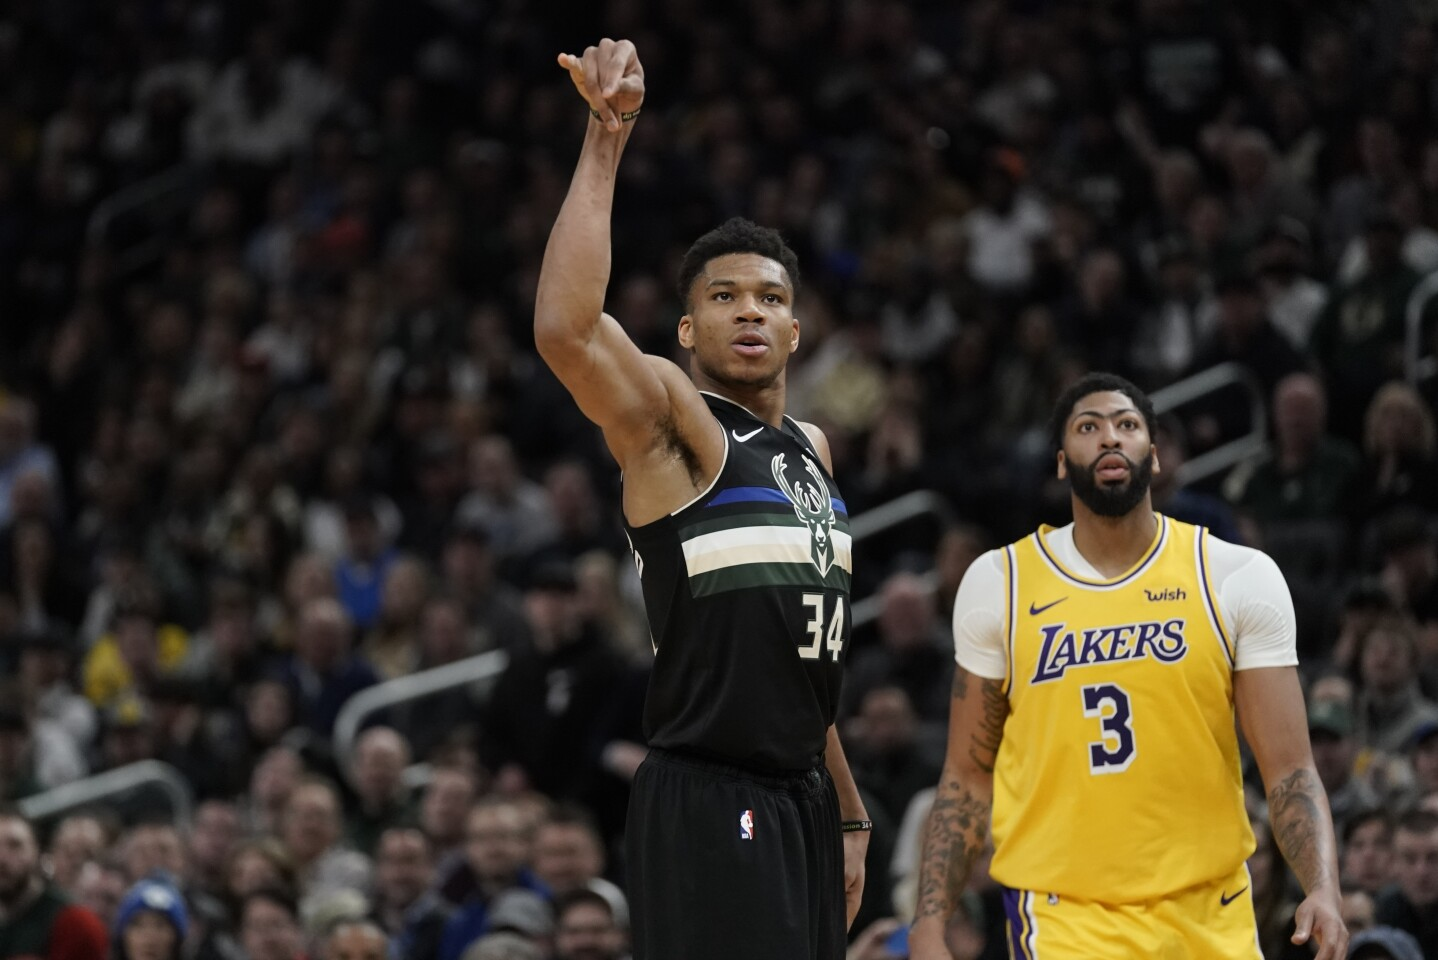 Milwaukee Bucks' Giannis Antetokounmpo makes a three-point basket in front of Los Angeles Lakers' Anthony Davis during the second half of an NBA basketball game Thursday, Dec. 19, 2019, in Milwaukee. The Bucks won 111-104. (AP Photo/Morry Gash)